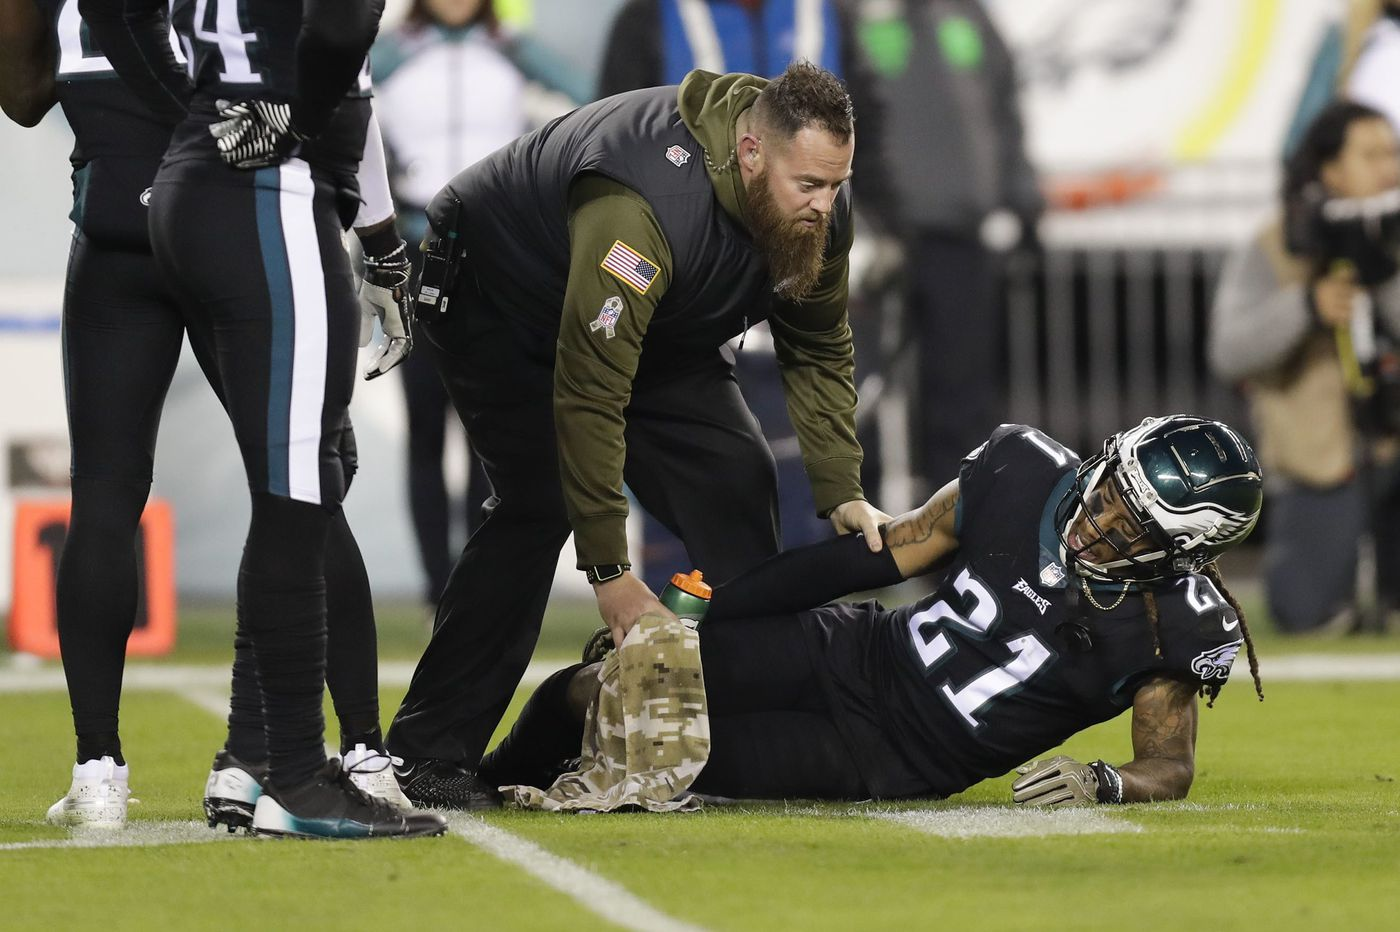 The Eagles were counting on Ronald Darby as the top cornerback, and now he's out for the season with a torn ACL